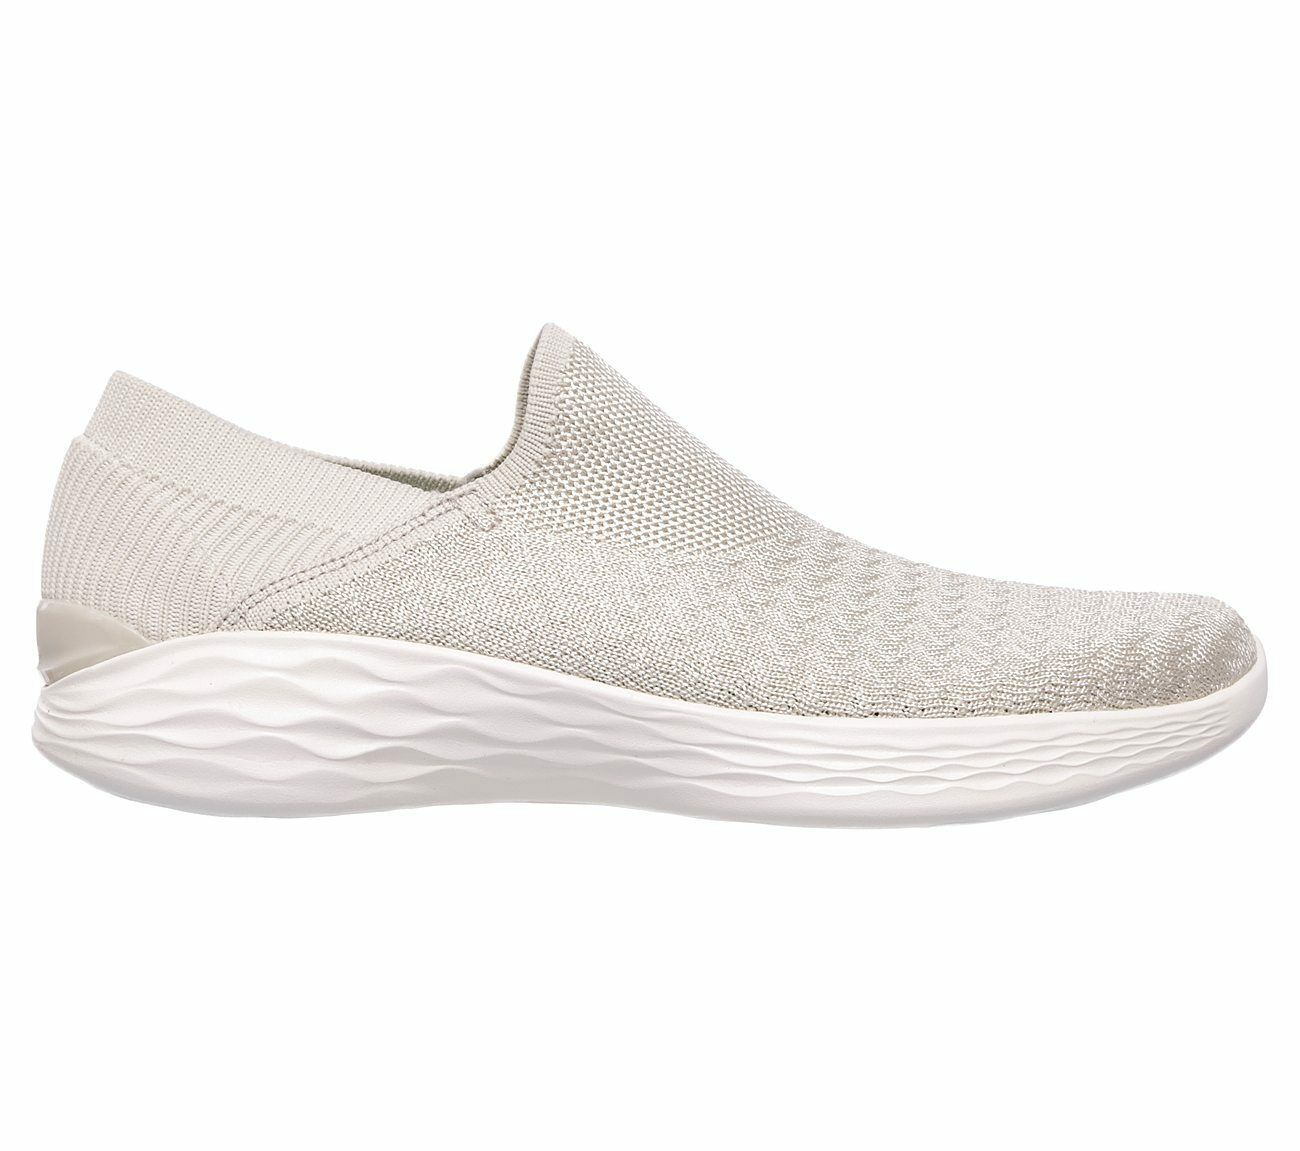 Skechers You - Transcend Trainers Damenschuhe Memory Foam Lifestyle Lifestyle Lifestyle Flats Schuhes 14959 917adc